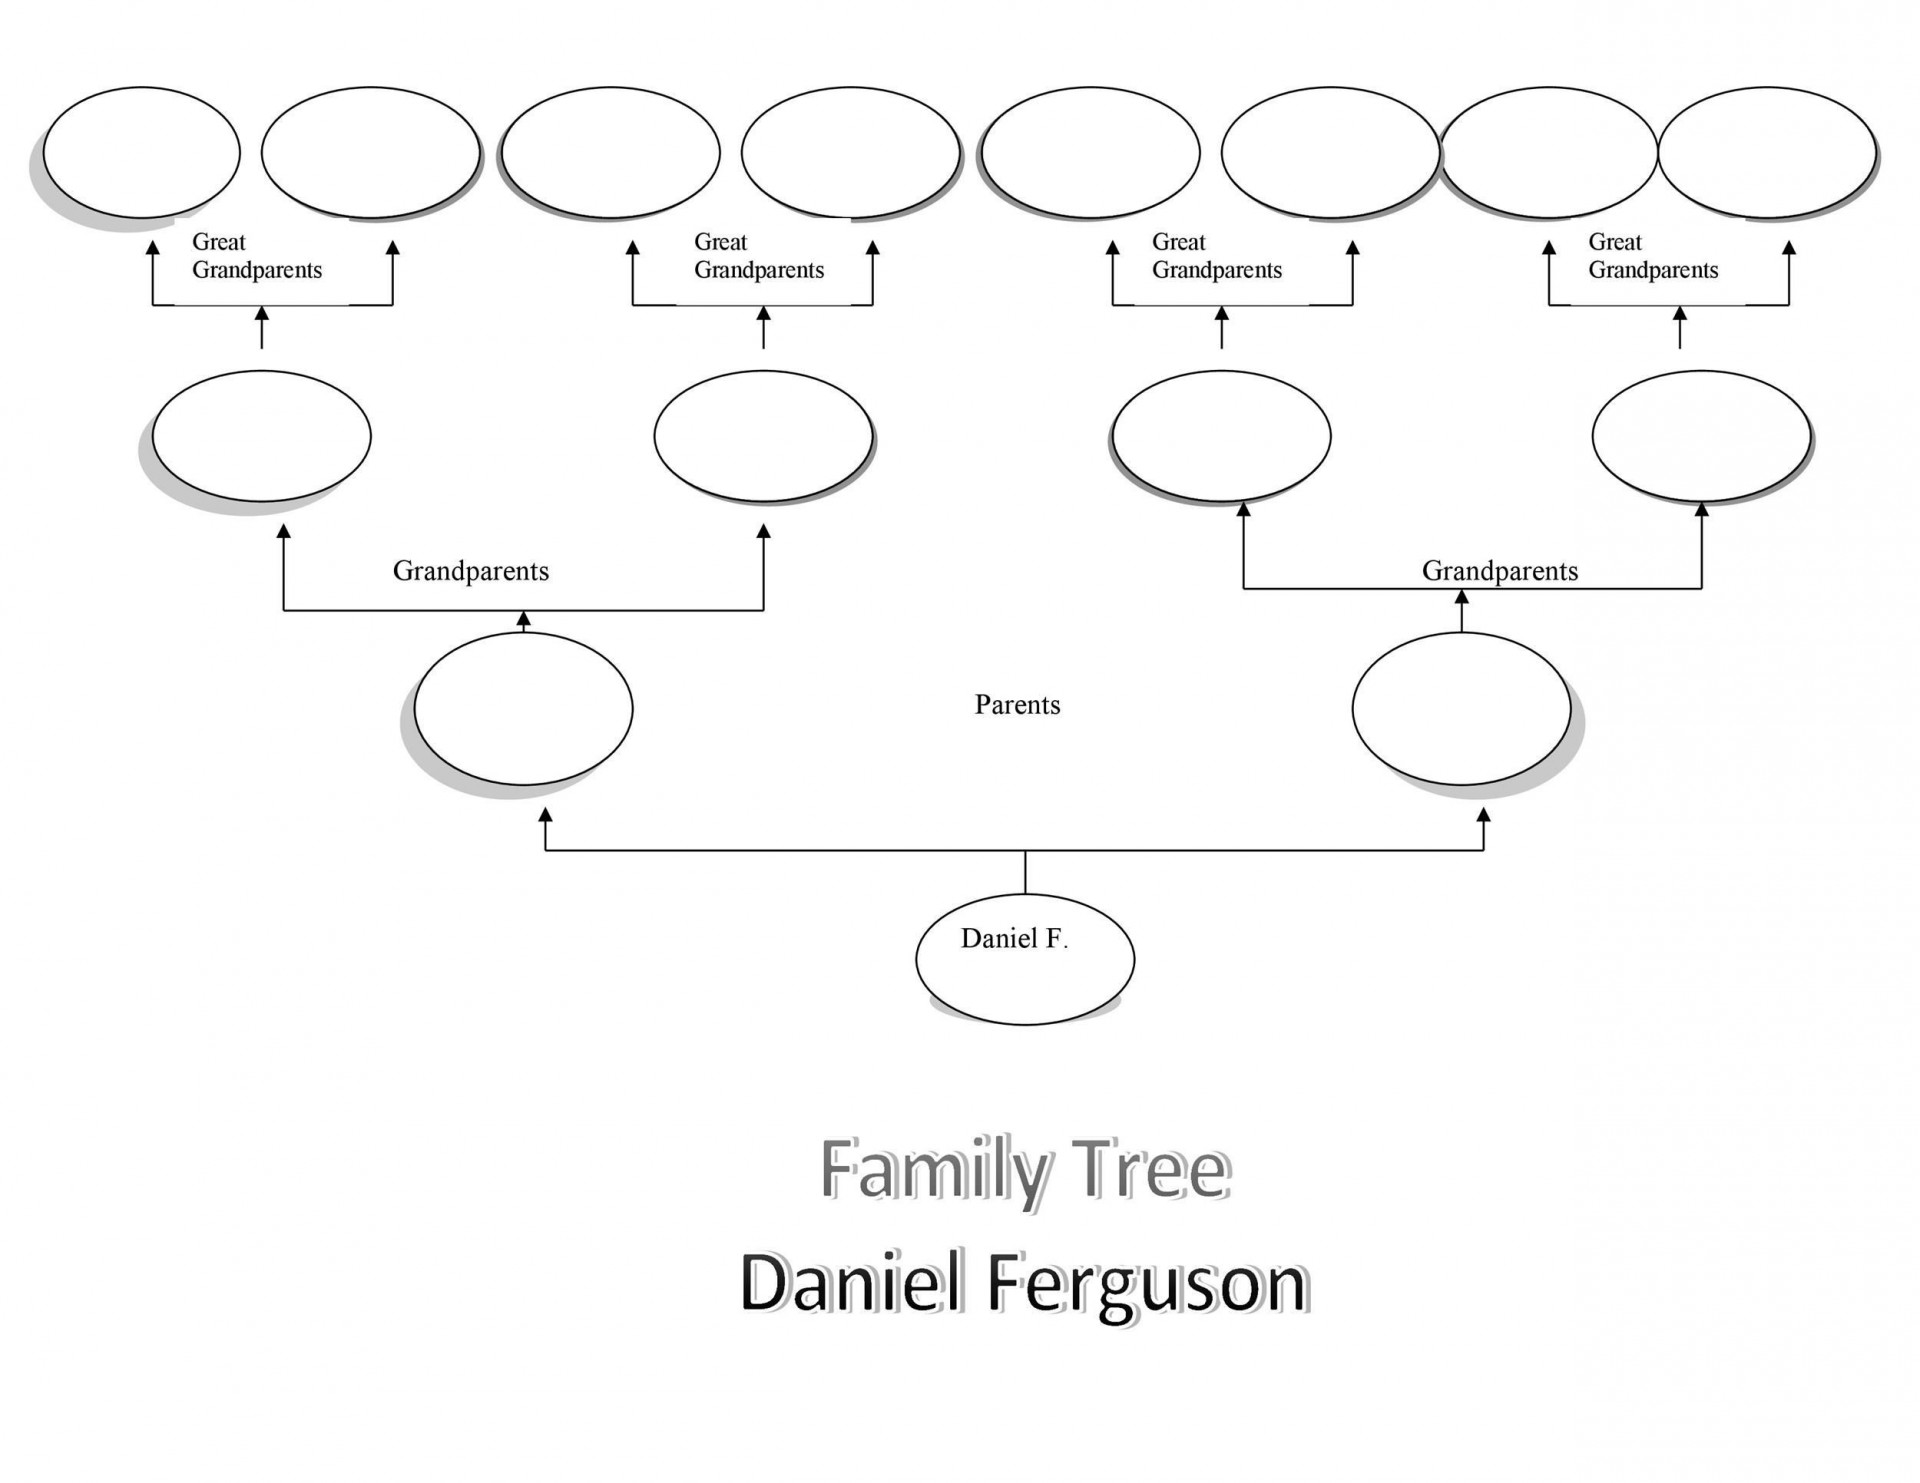 009 Amazing Free Online Family Tree Chart Template High Resolution 1920